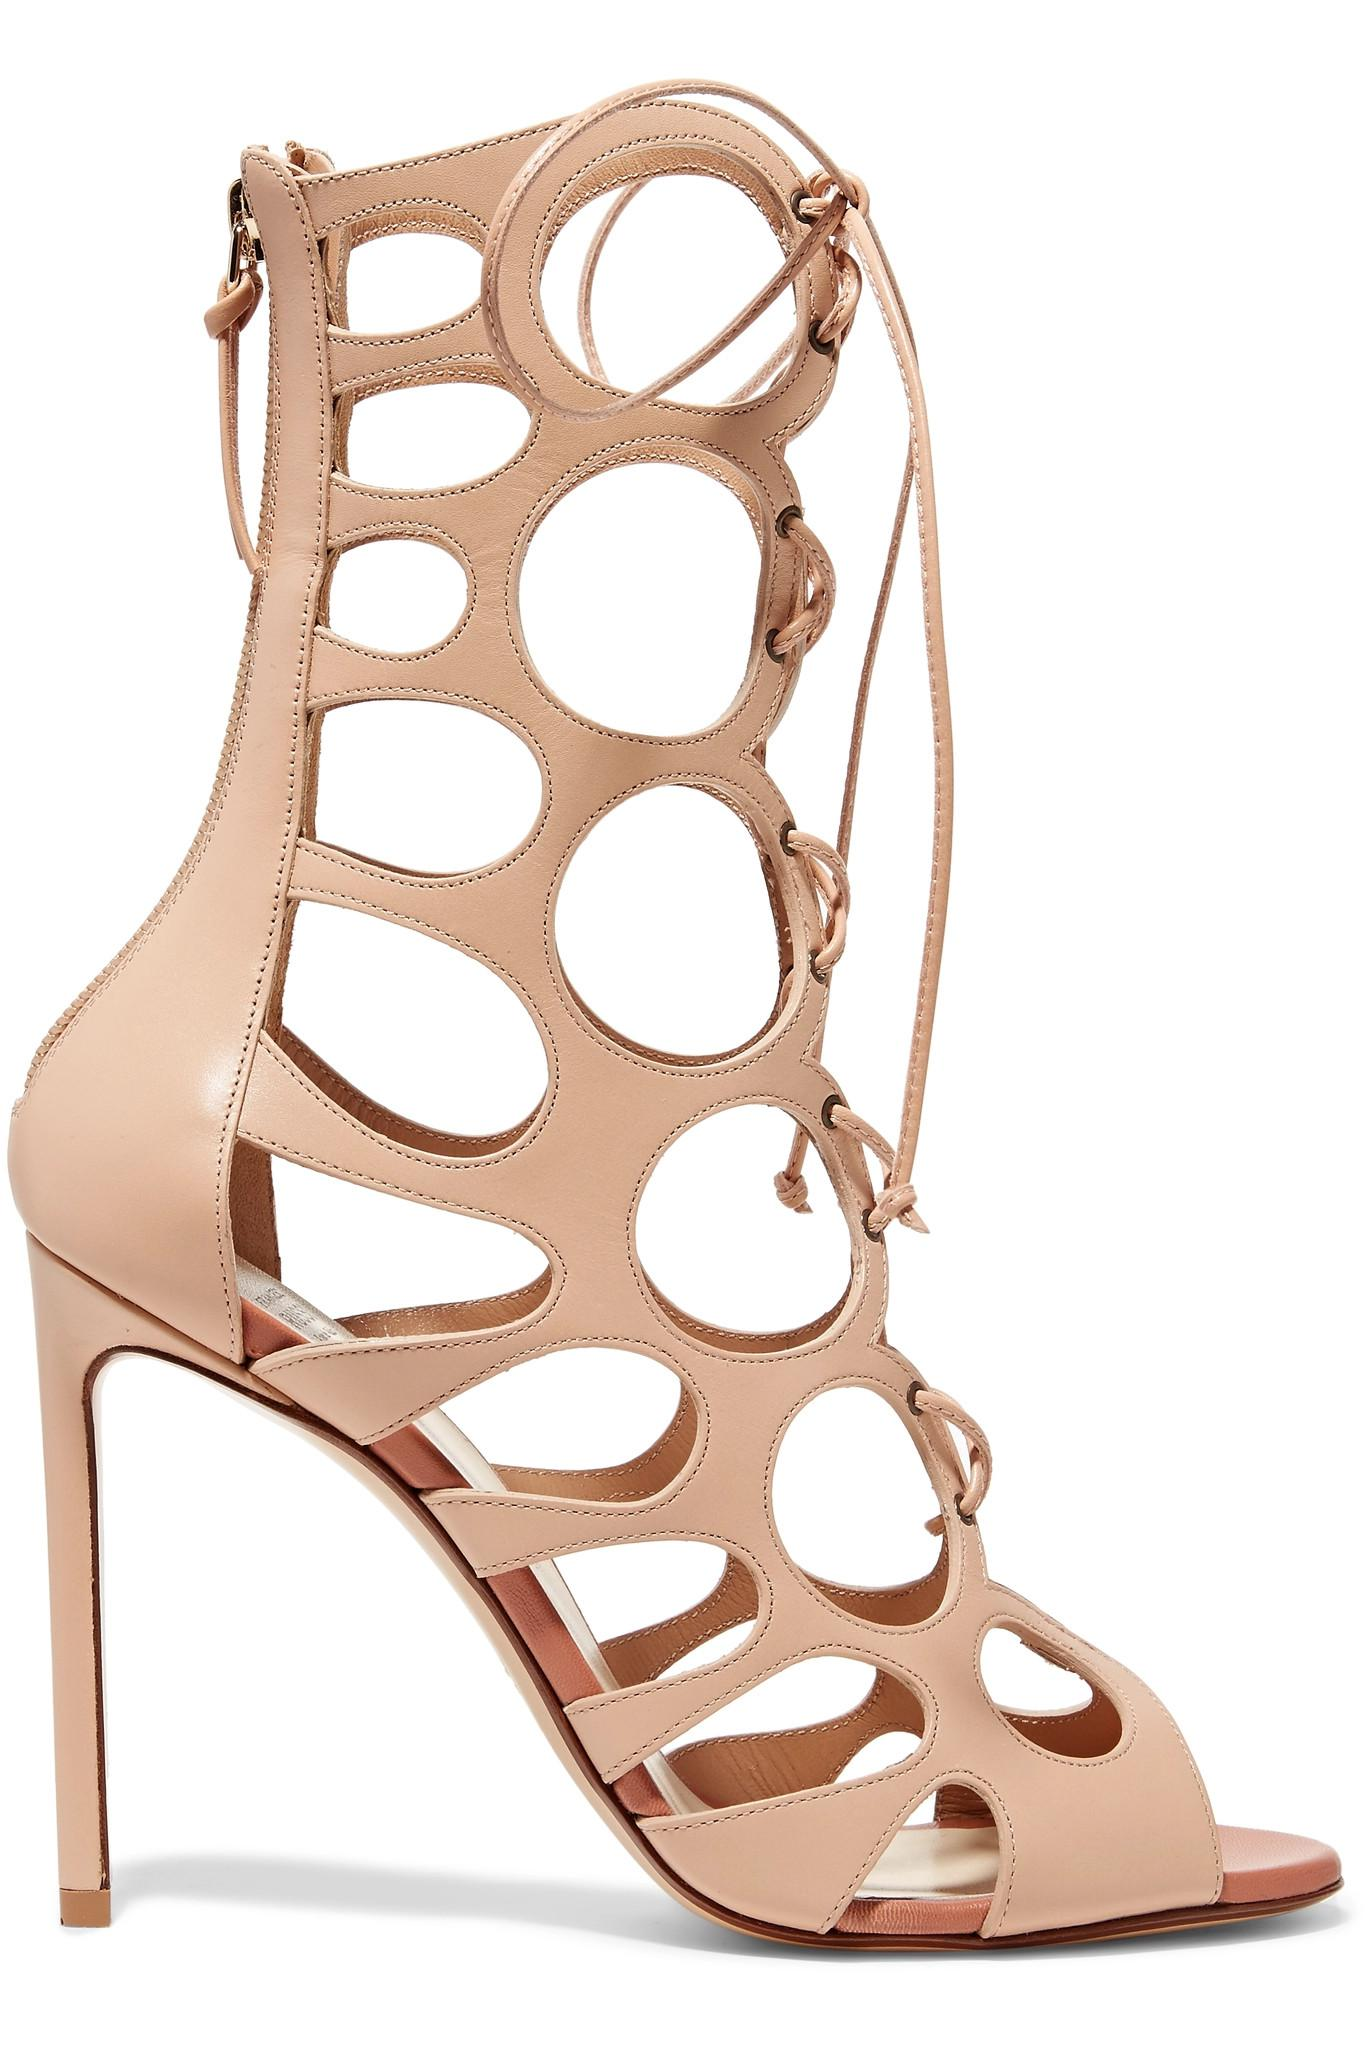 Cutout Leather Sandals - Beige Francesco Russo vYjjarA9